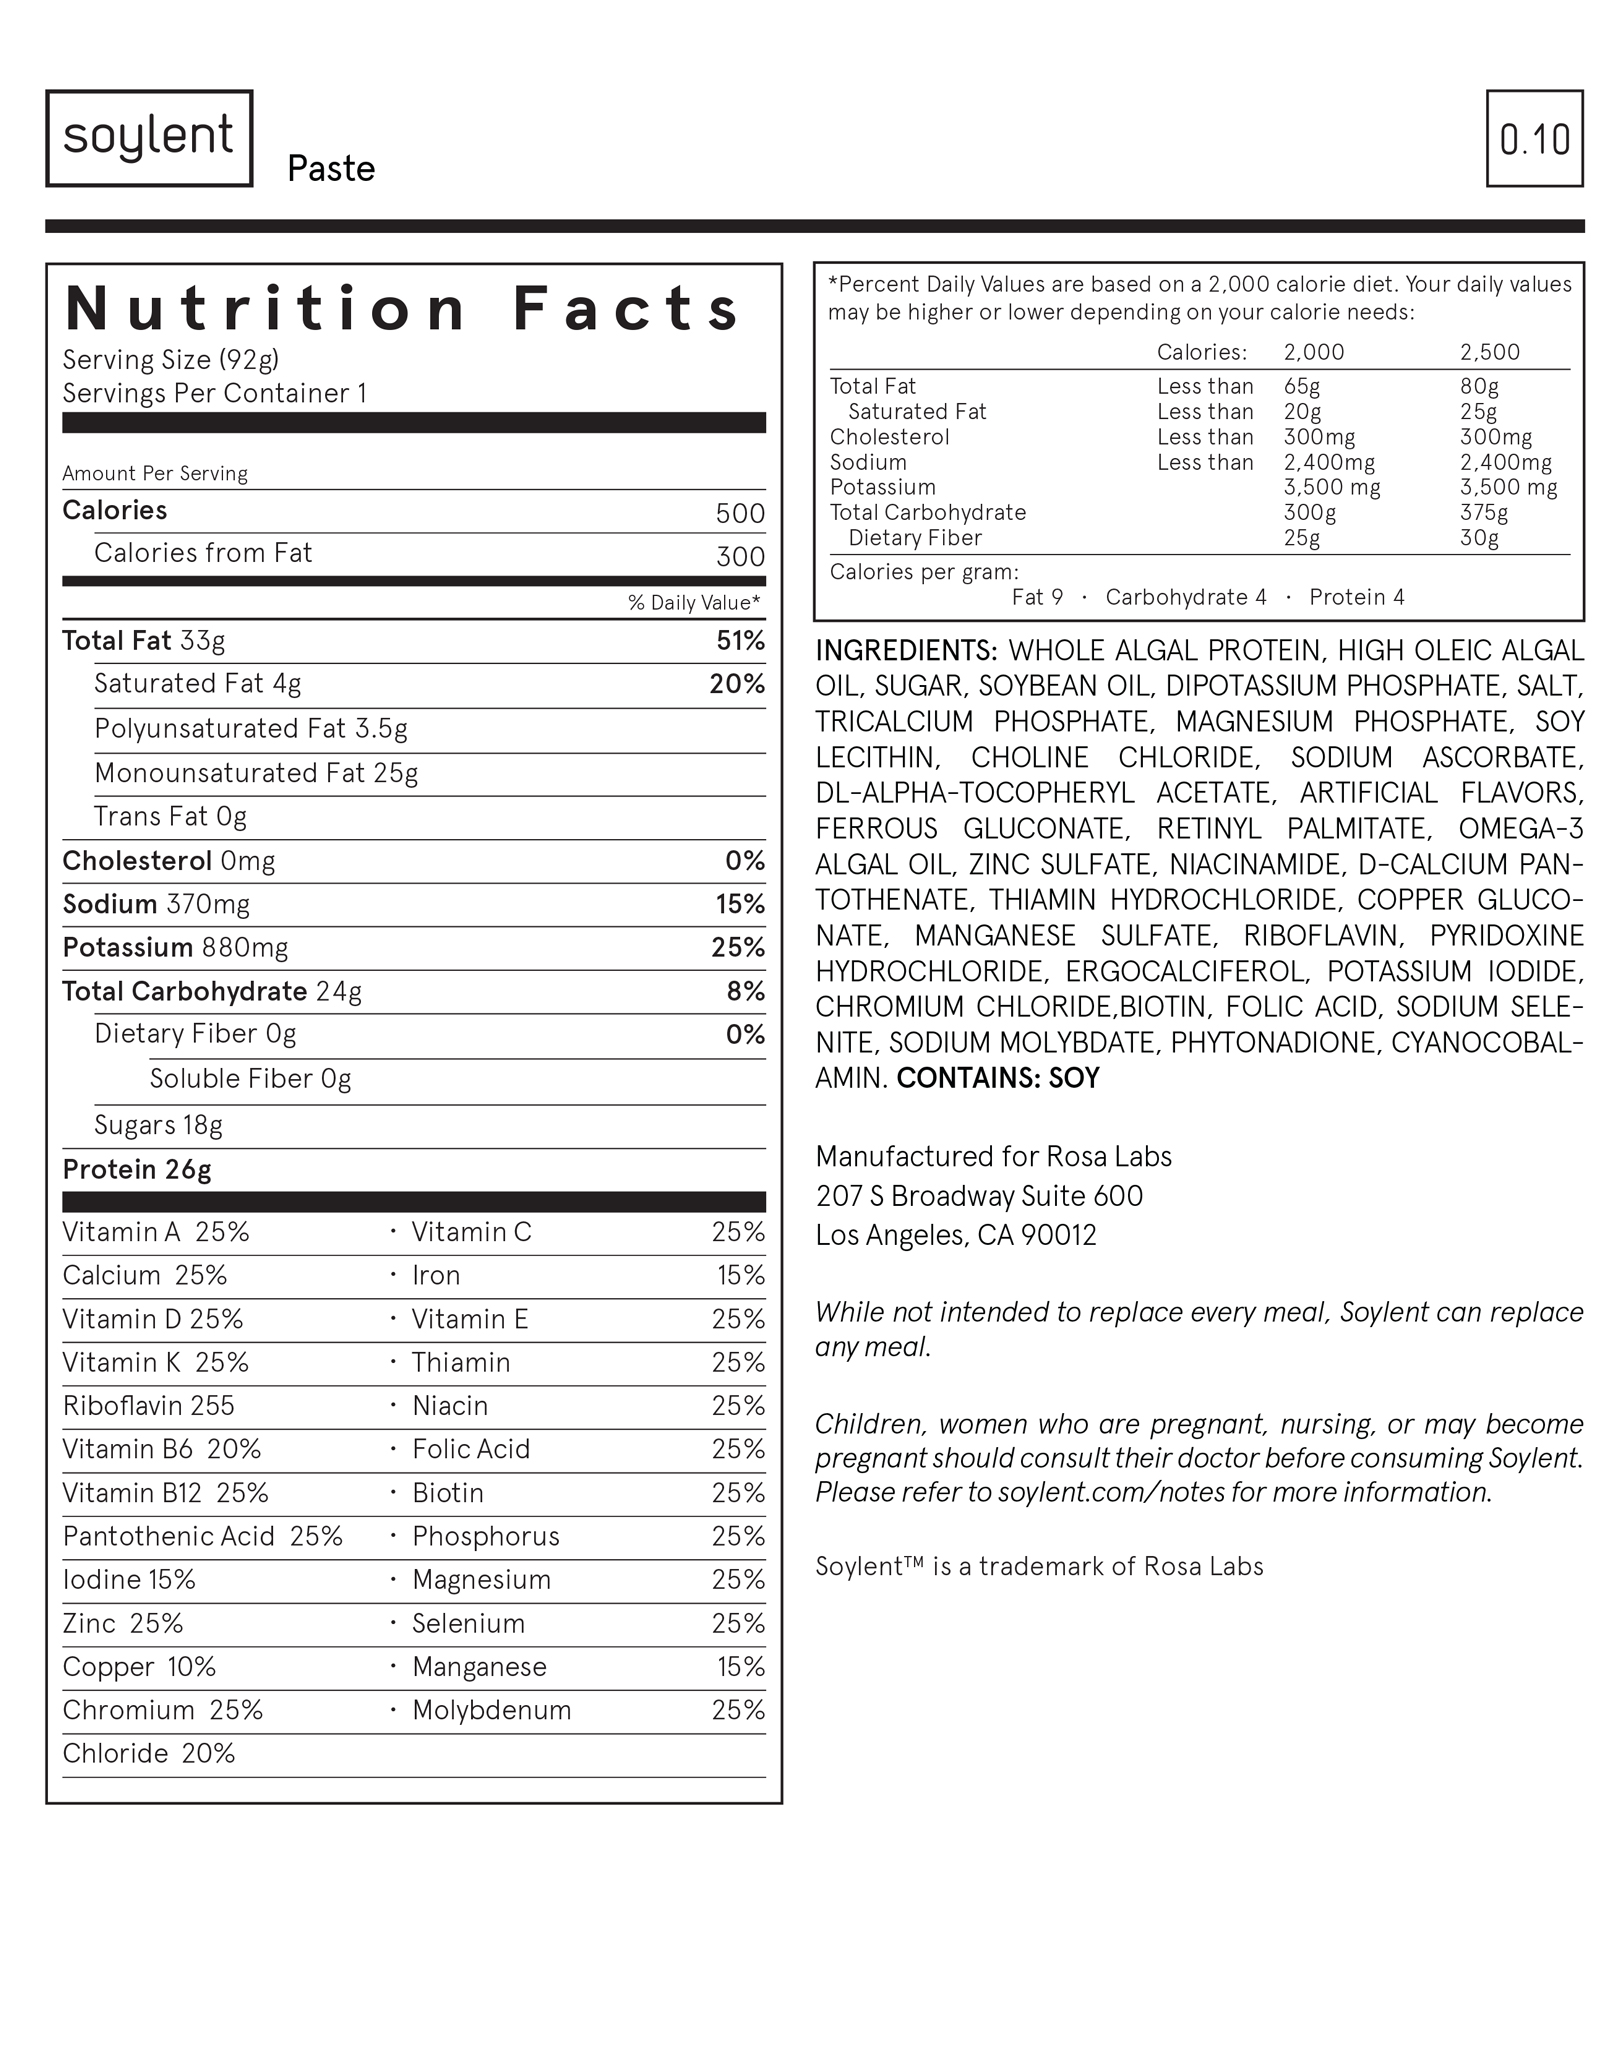 soylent-nutrition-facts-paste